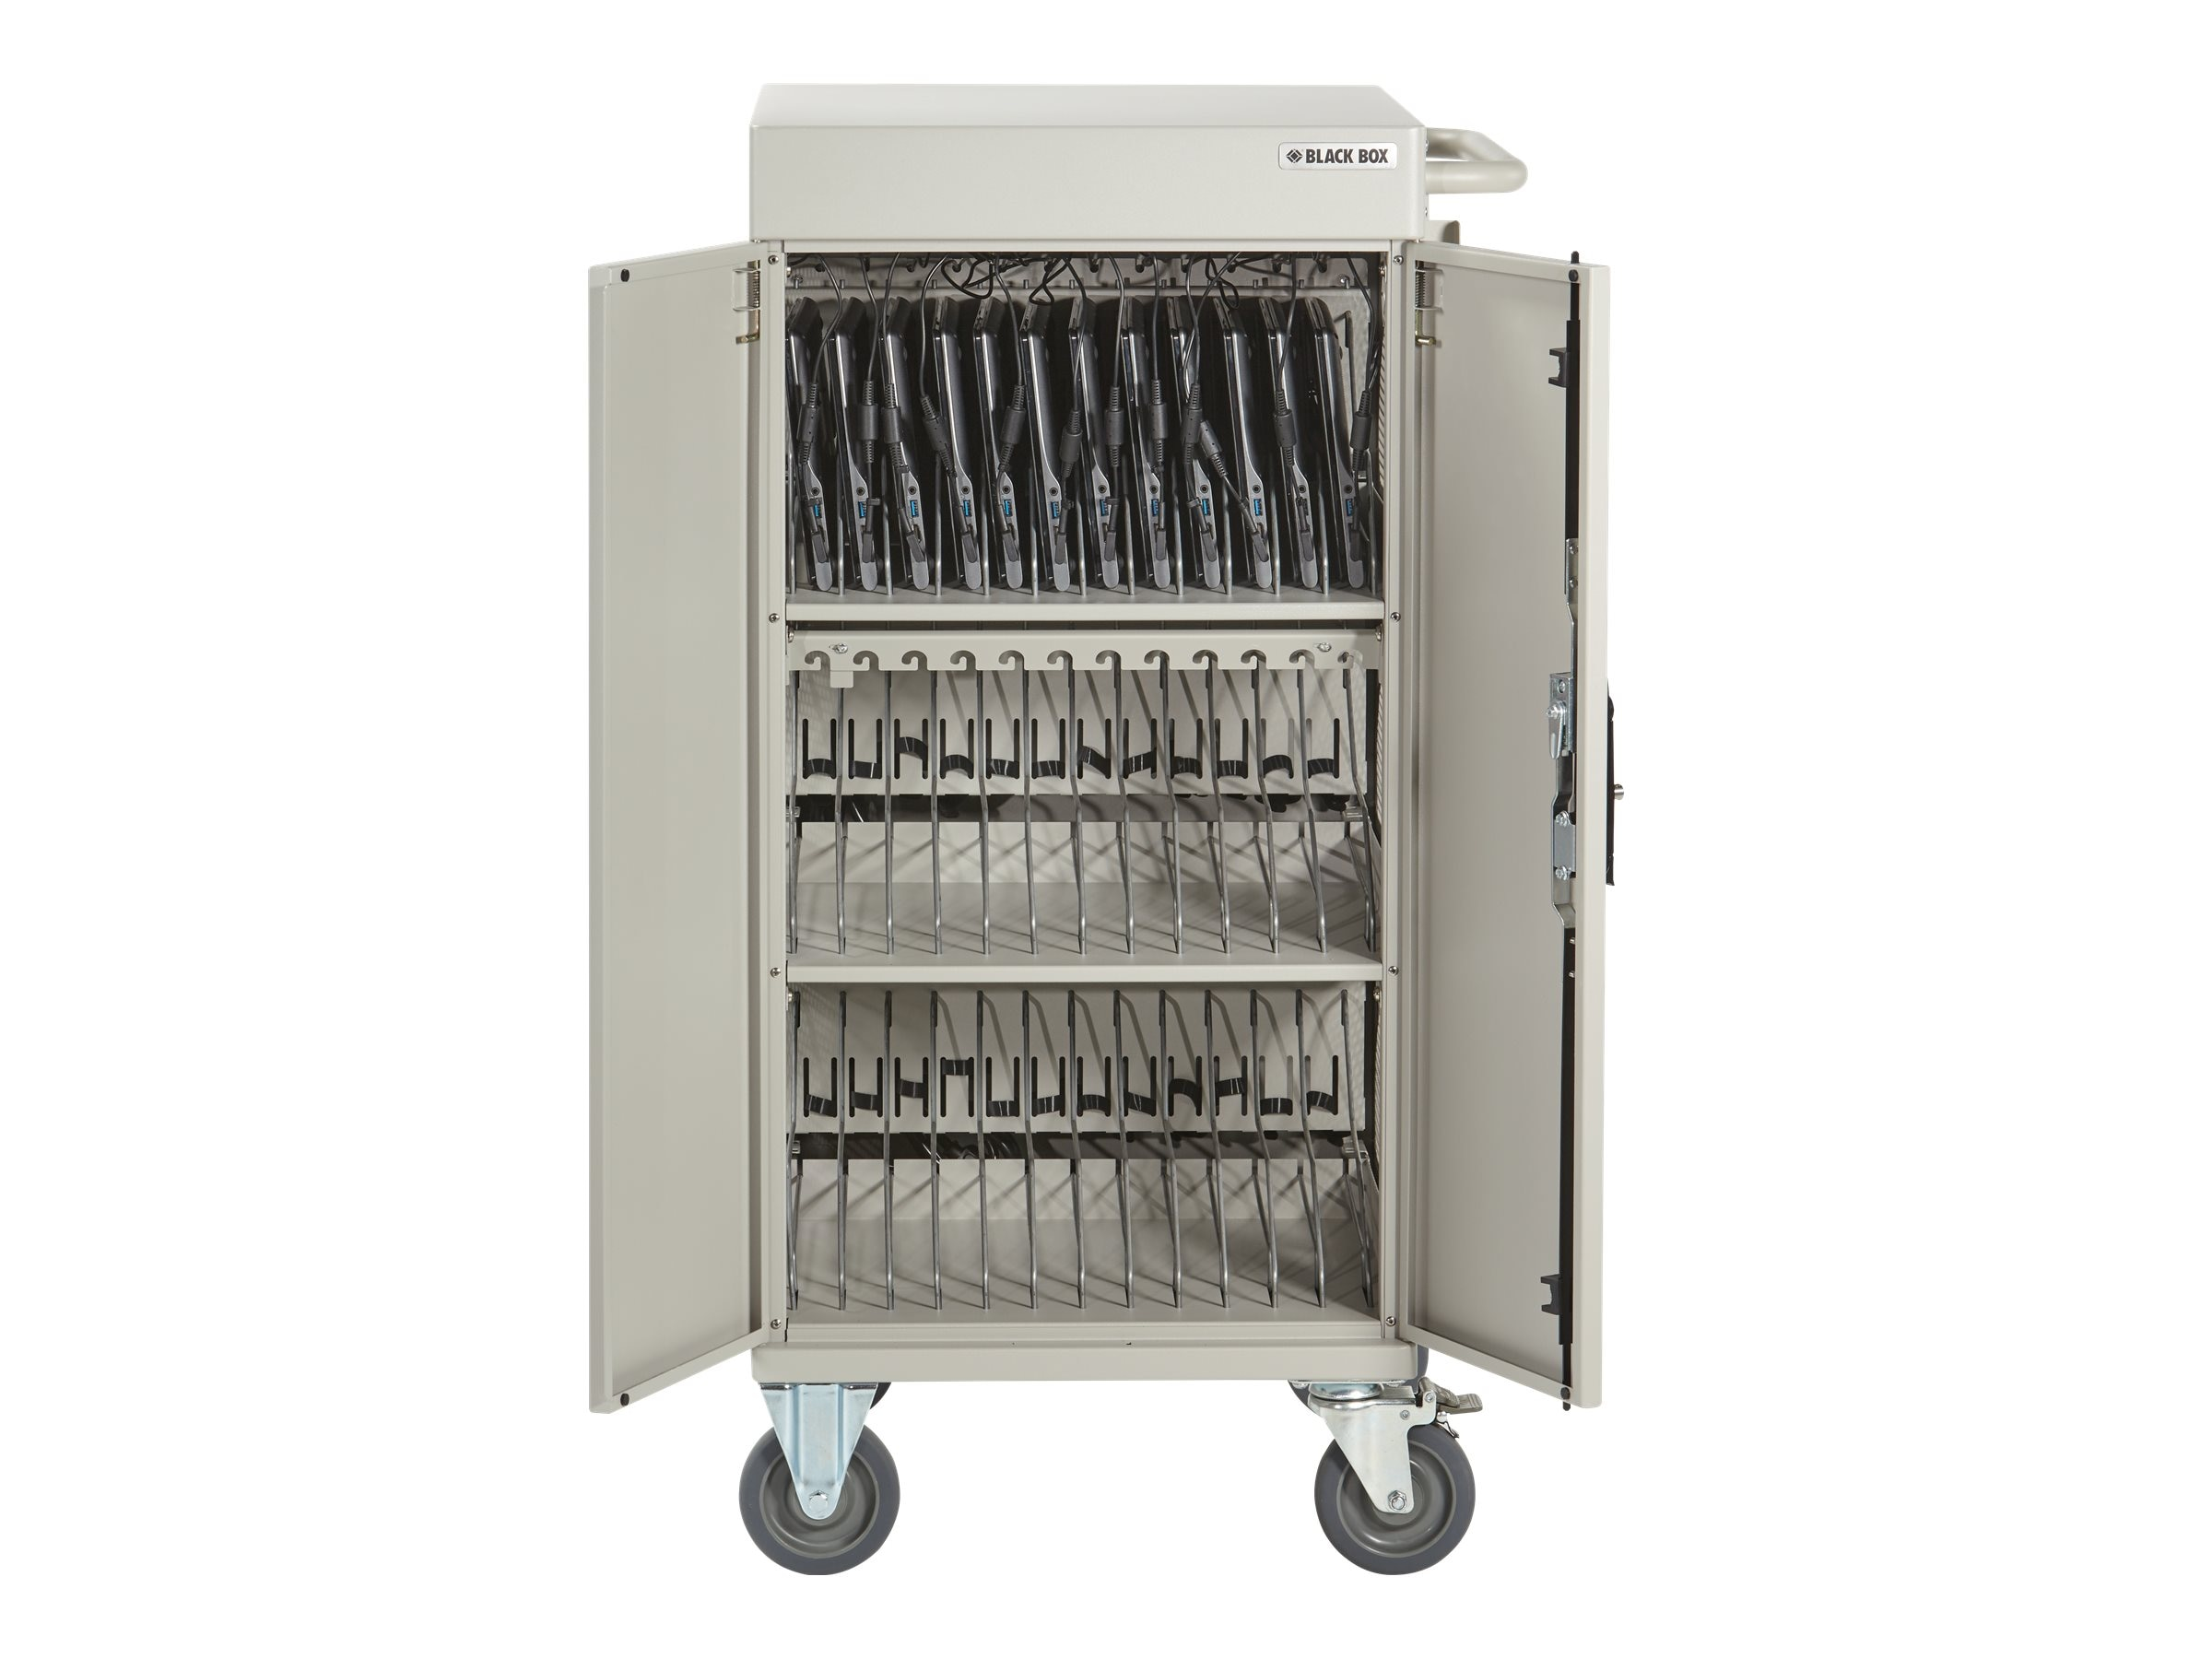 Black Box 36-Unit Standard Cart - Intelligent Charging, Hinged Door, Keylock, Front Cable Management